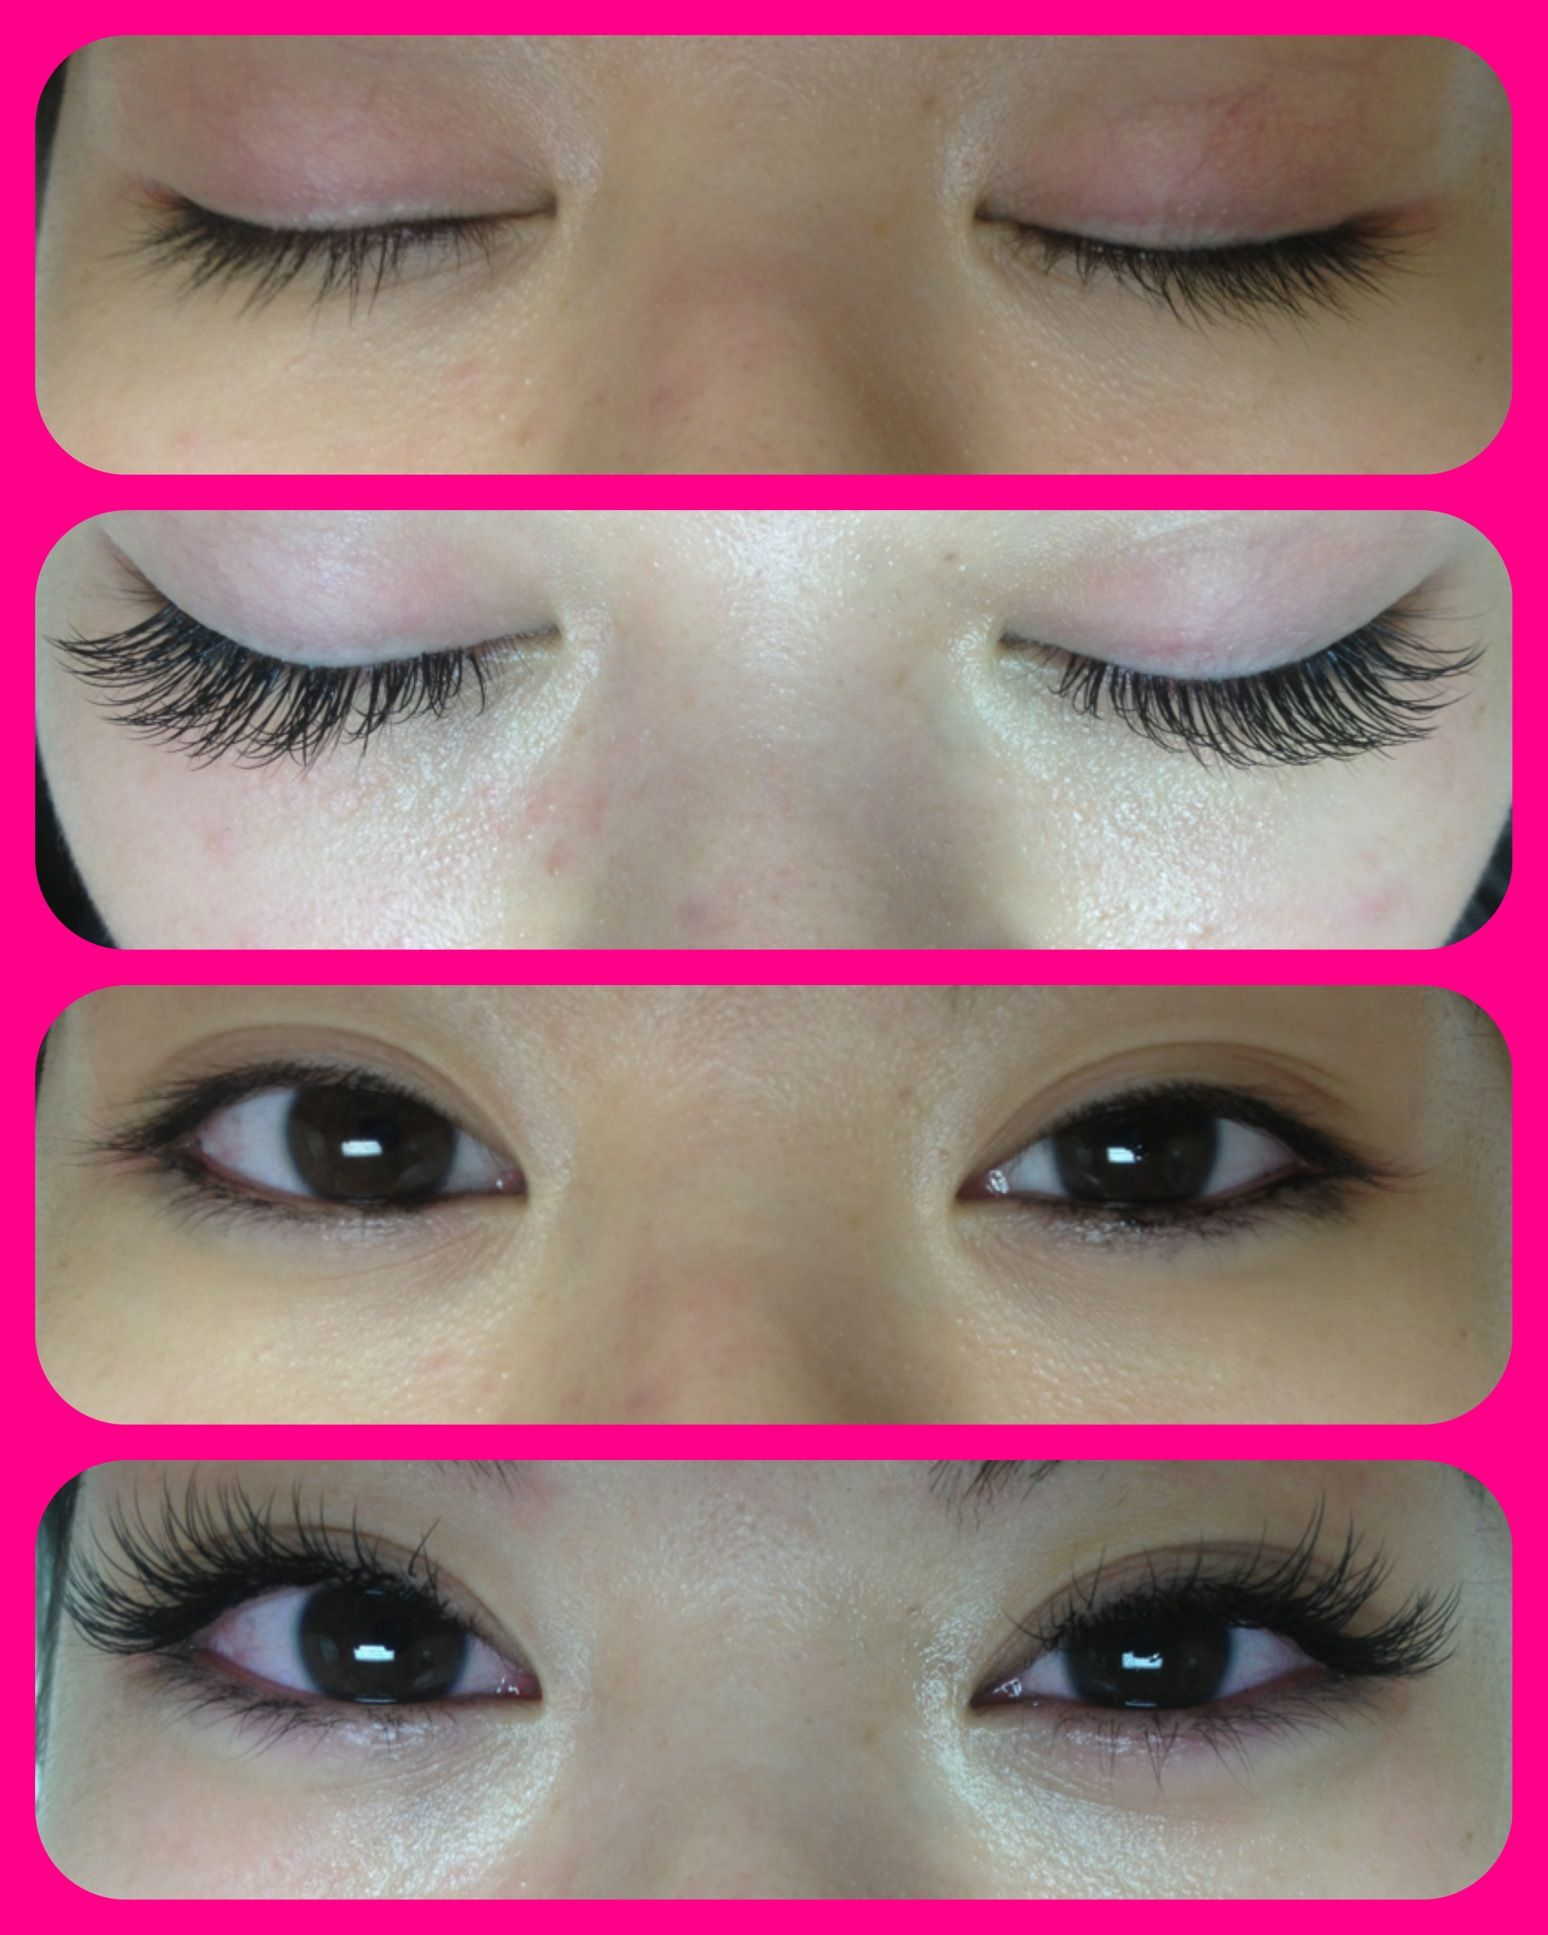 Gladlash Glad Lash Semi Permanent Eyelash Extensions Beauty In